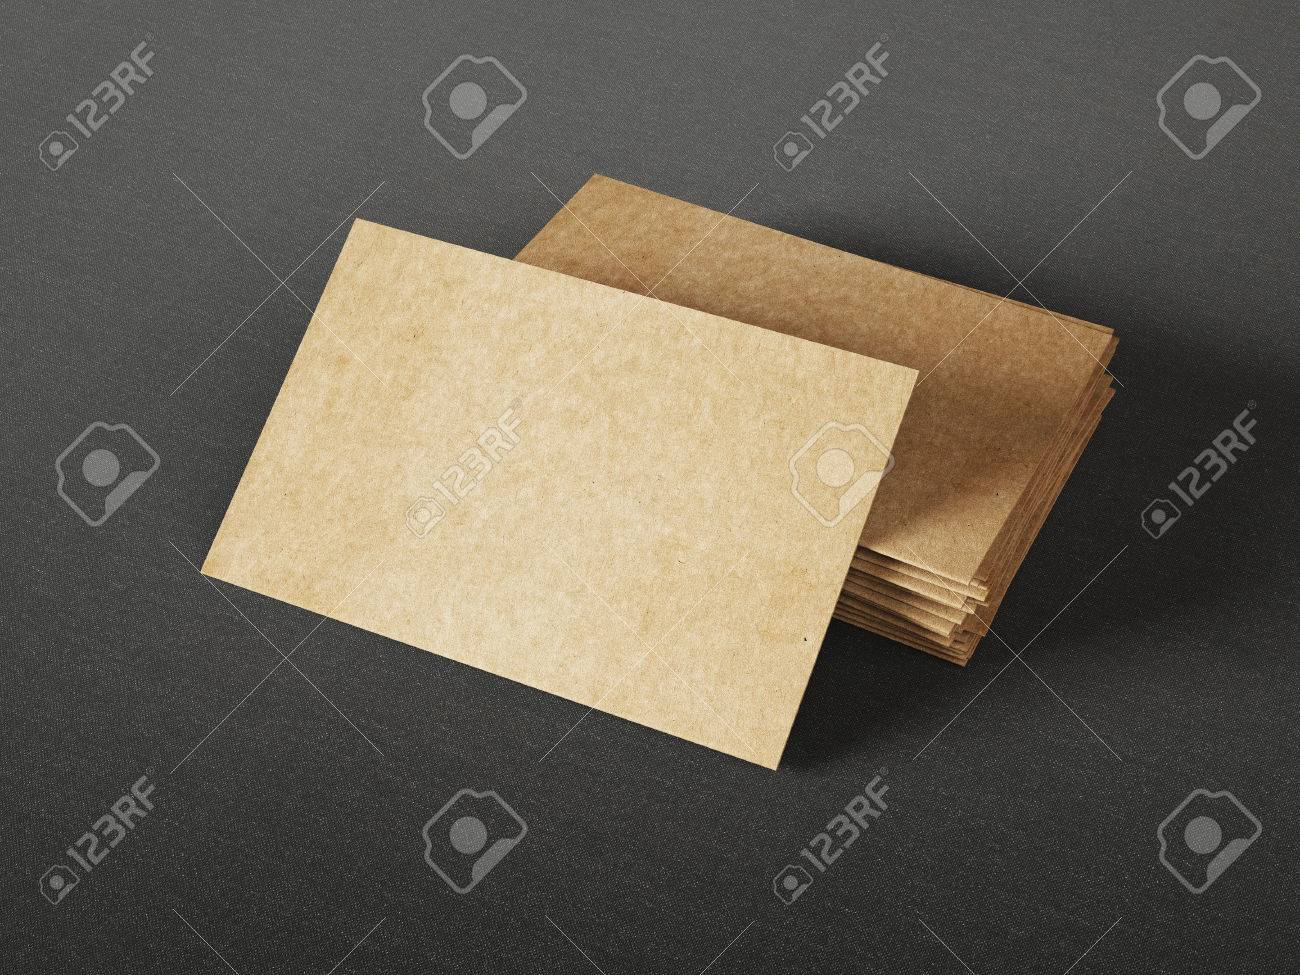 Cardboard Business Cards On Dark Background Stock Photo, Picture And ...